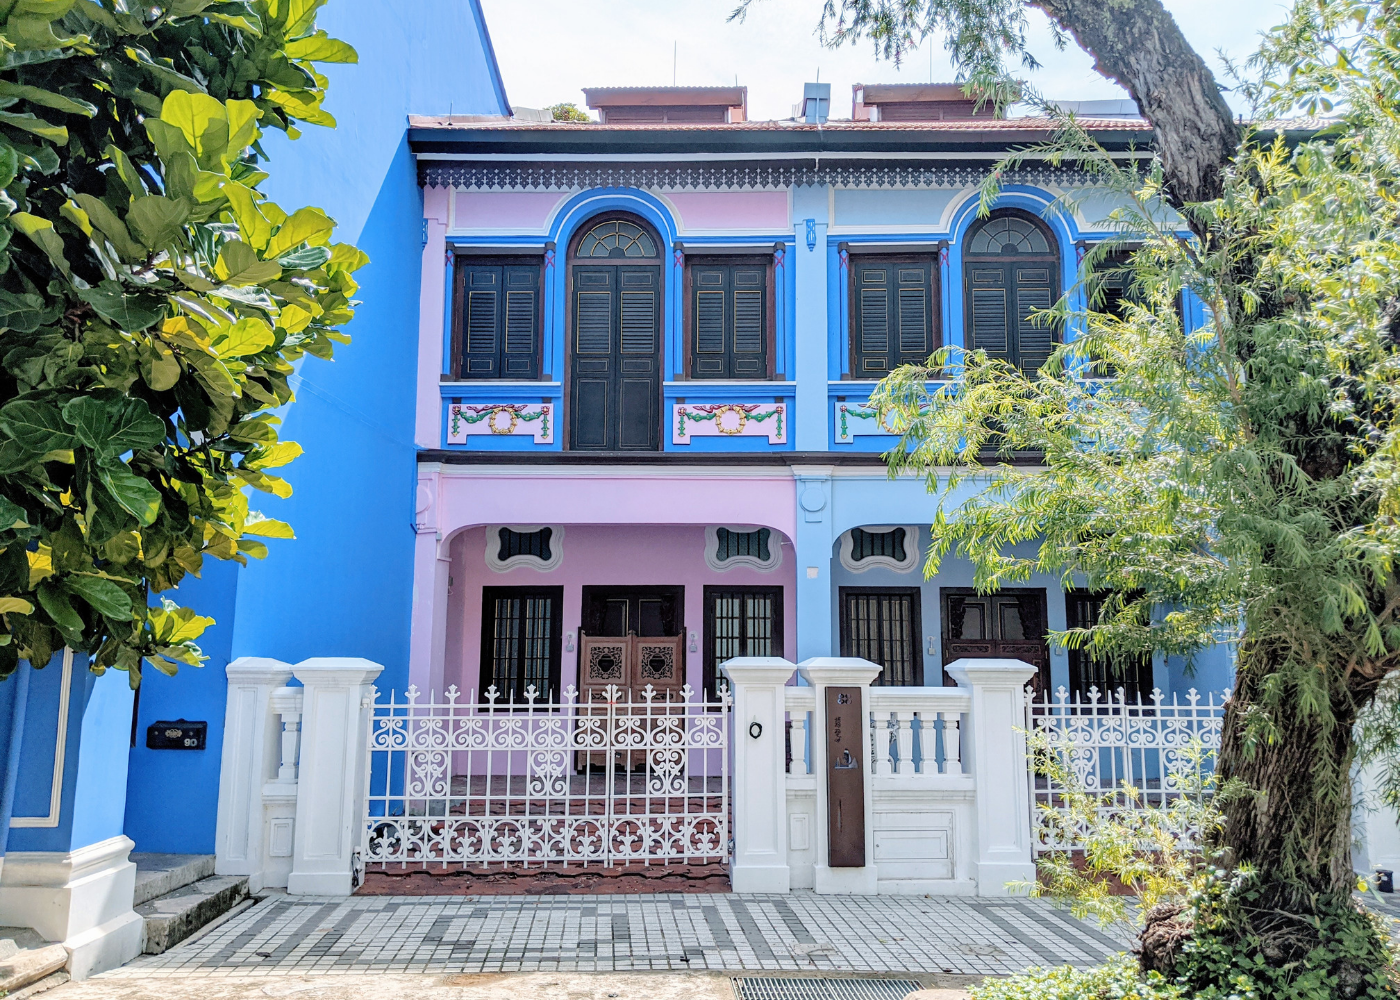 Heritage shophouses in Singapore | Guide to Emerald Hill